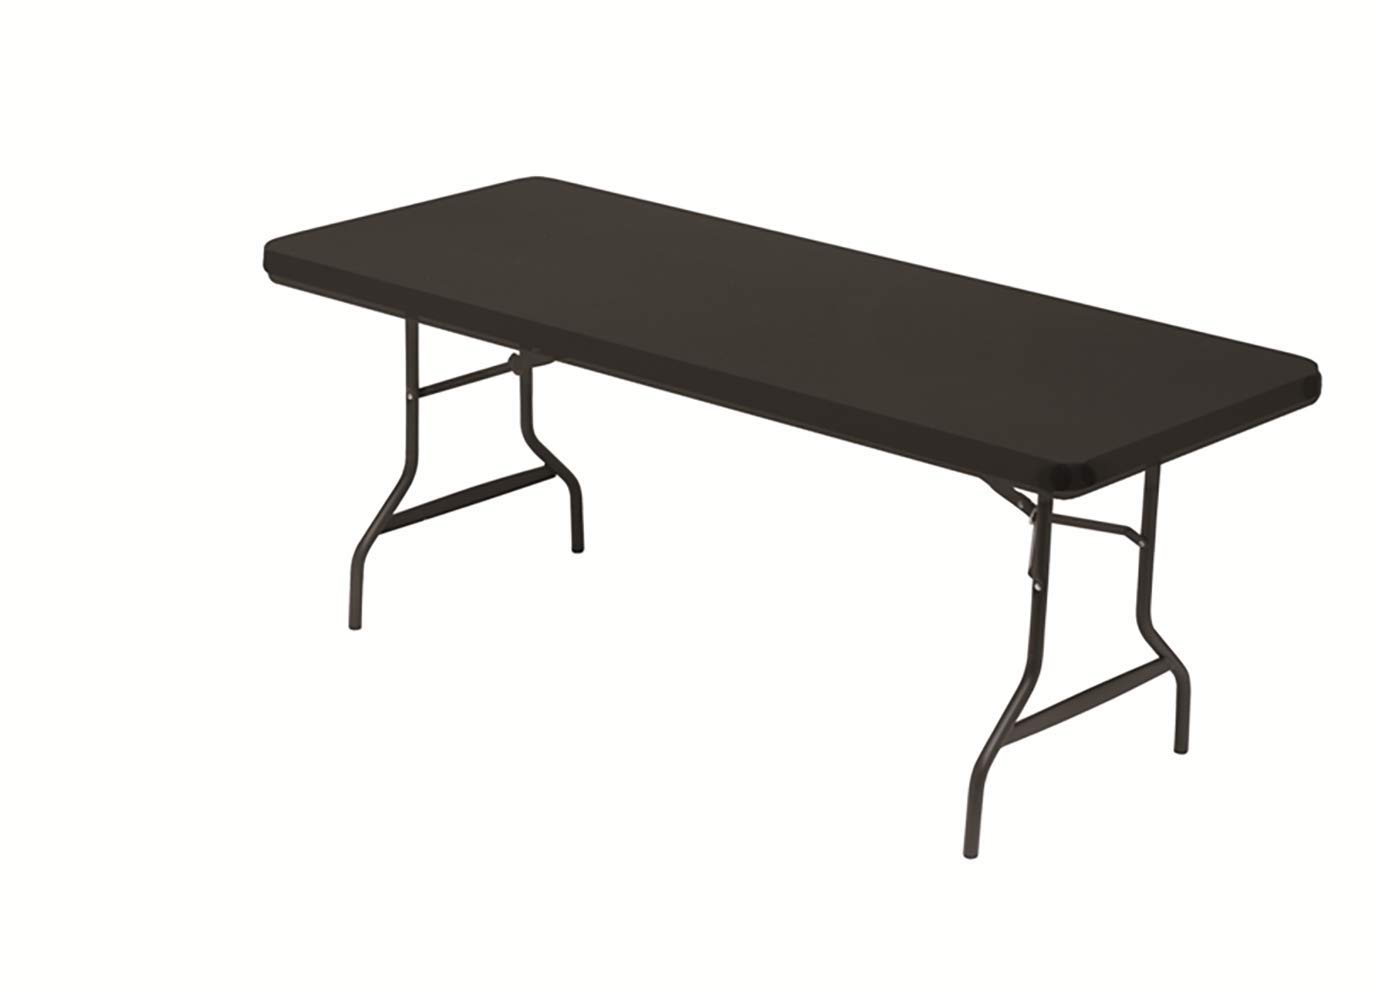 Polyester//Spandex 6 Feet Black Iceberg 16621 Stretch Fabric Table Top Cap Cover